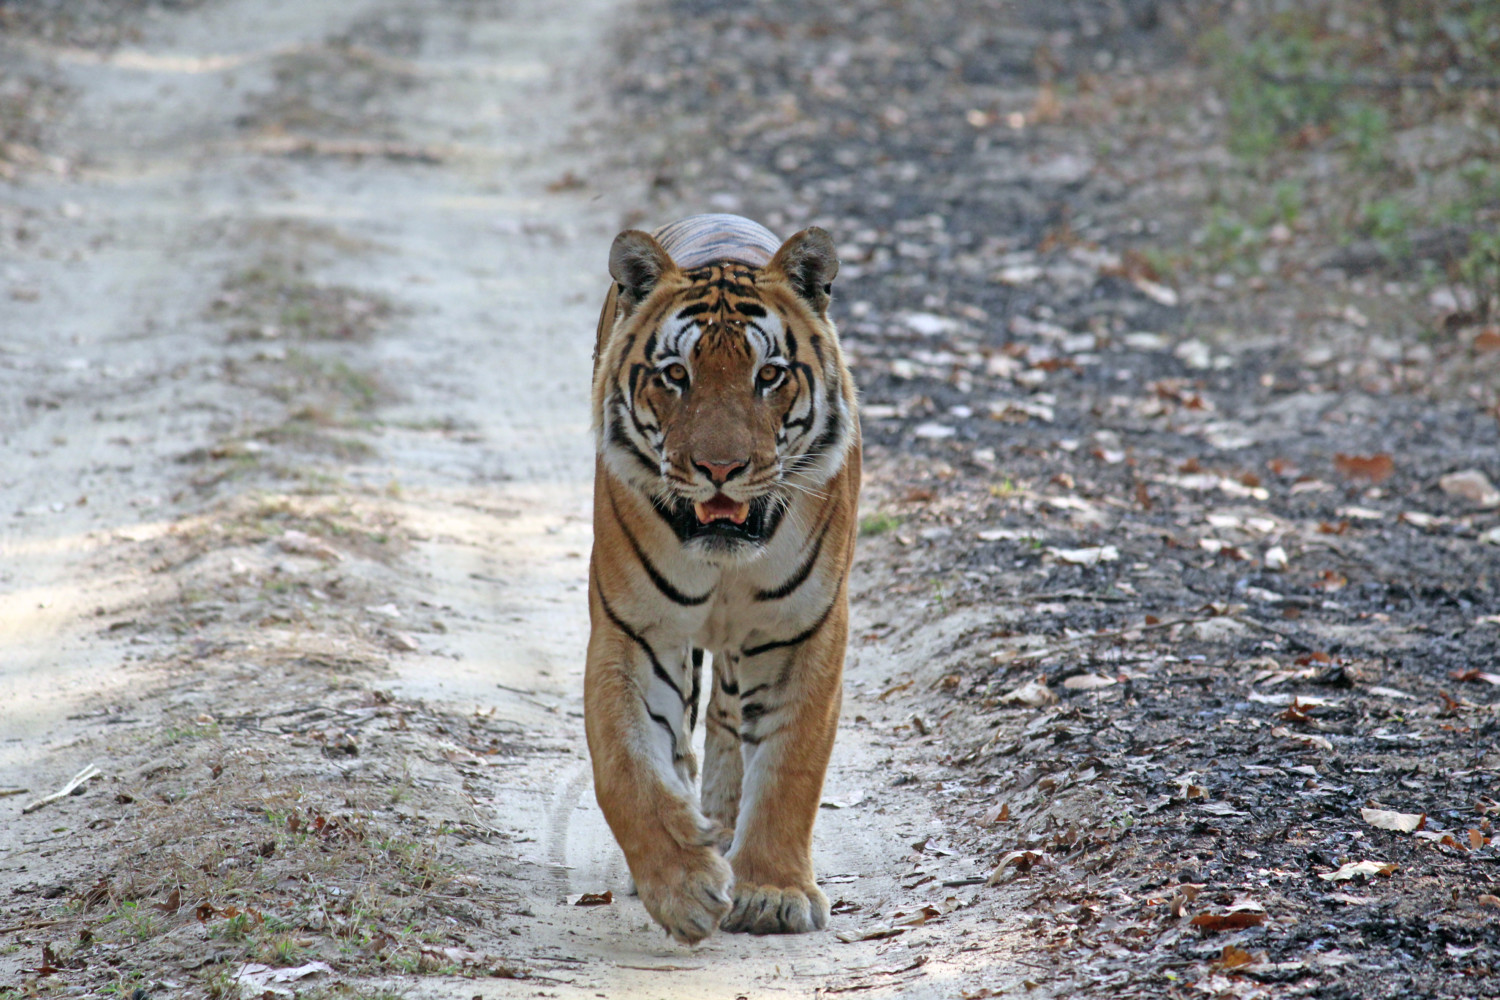 Clemson Researchers Studying Human Tiger Conflicts In